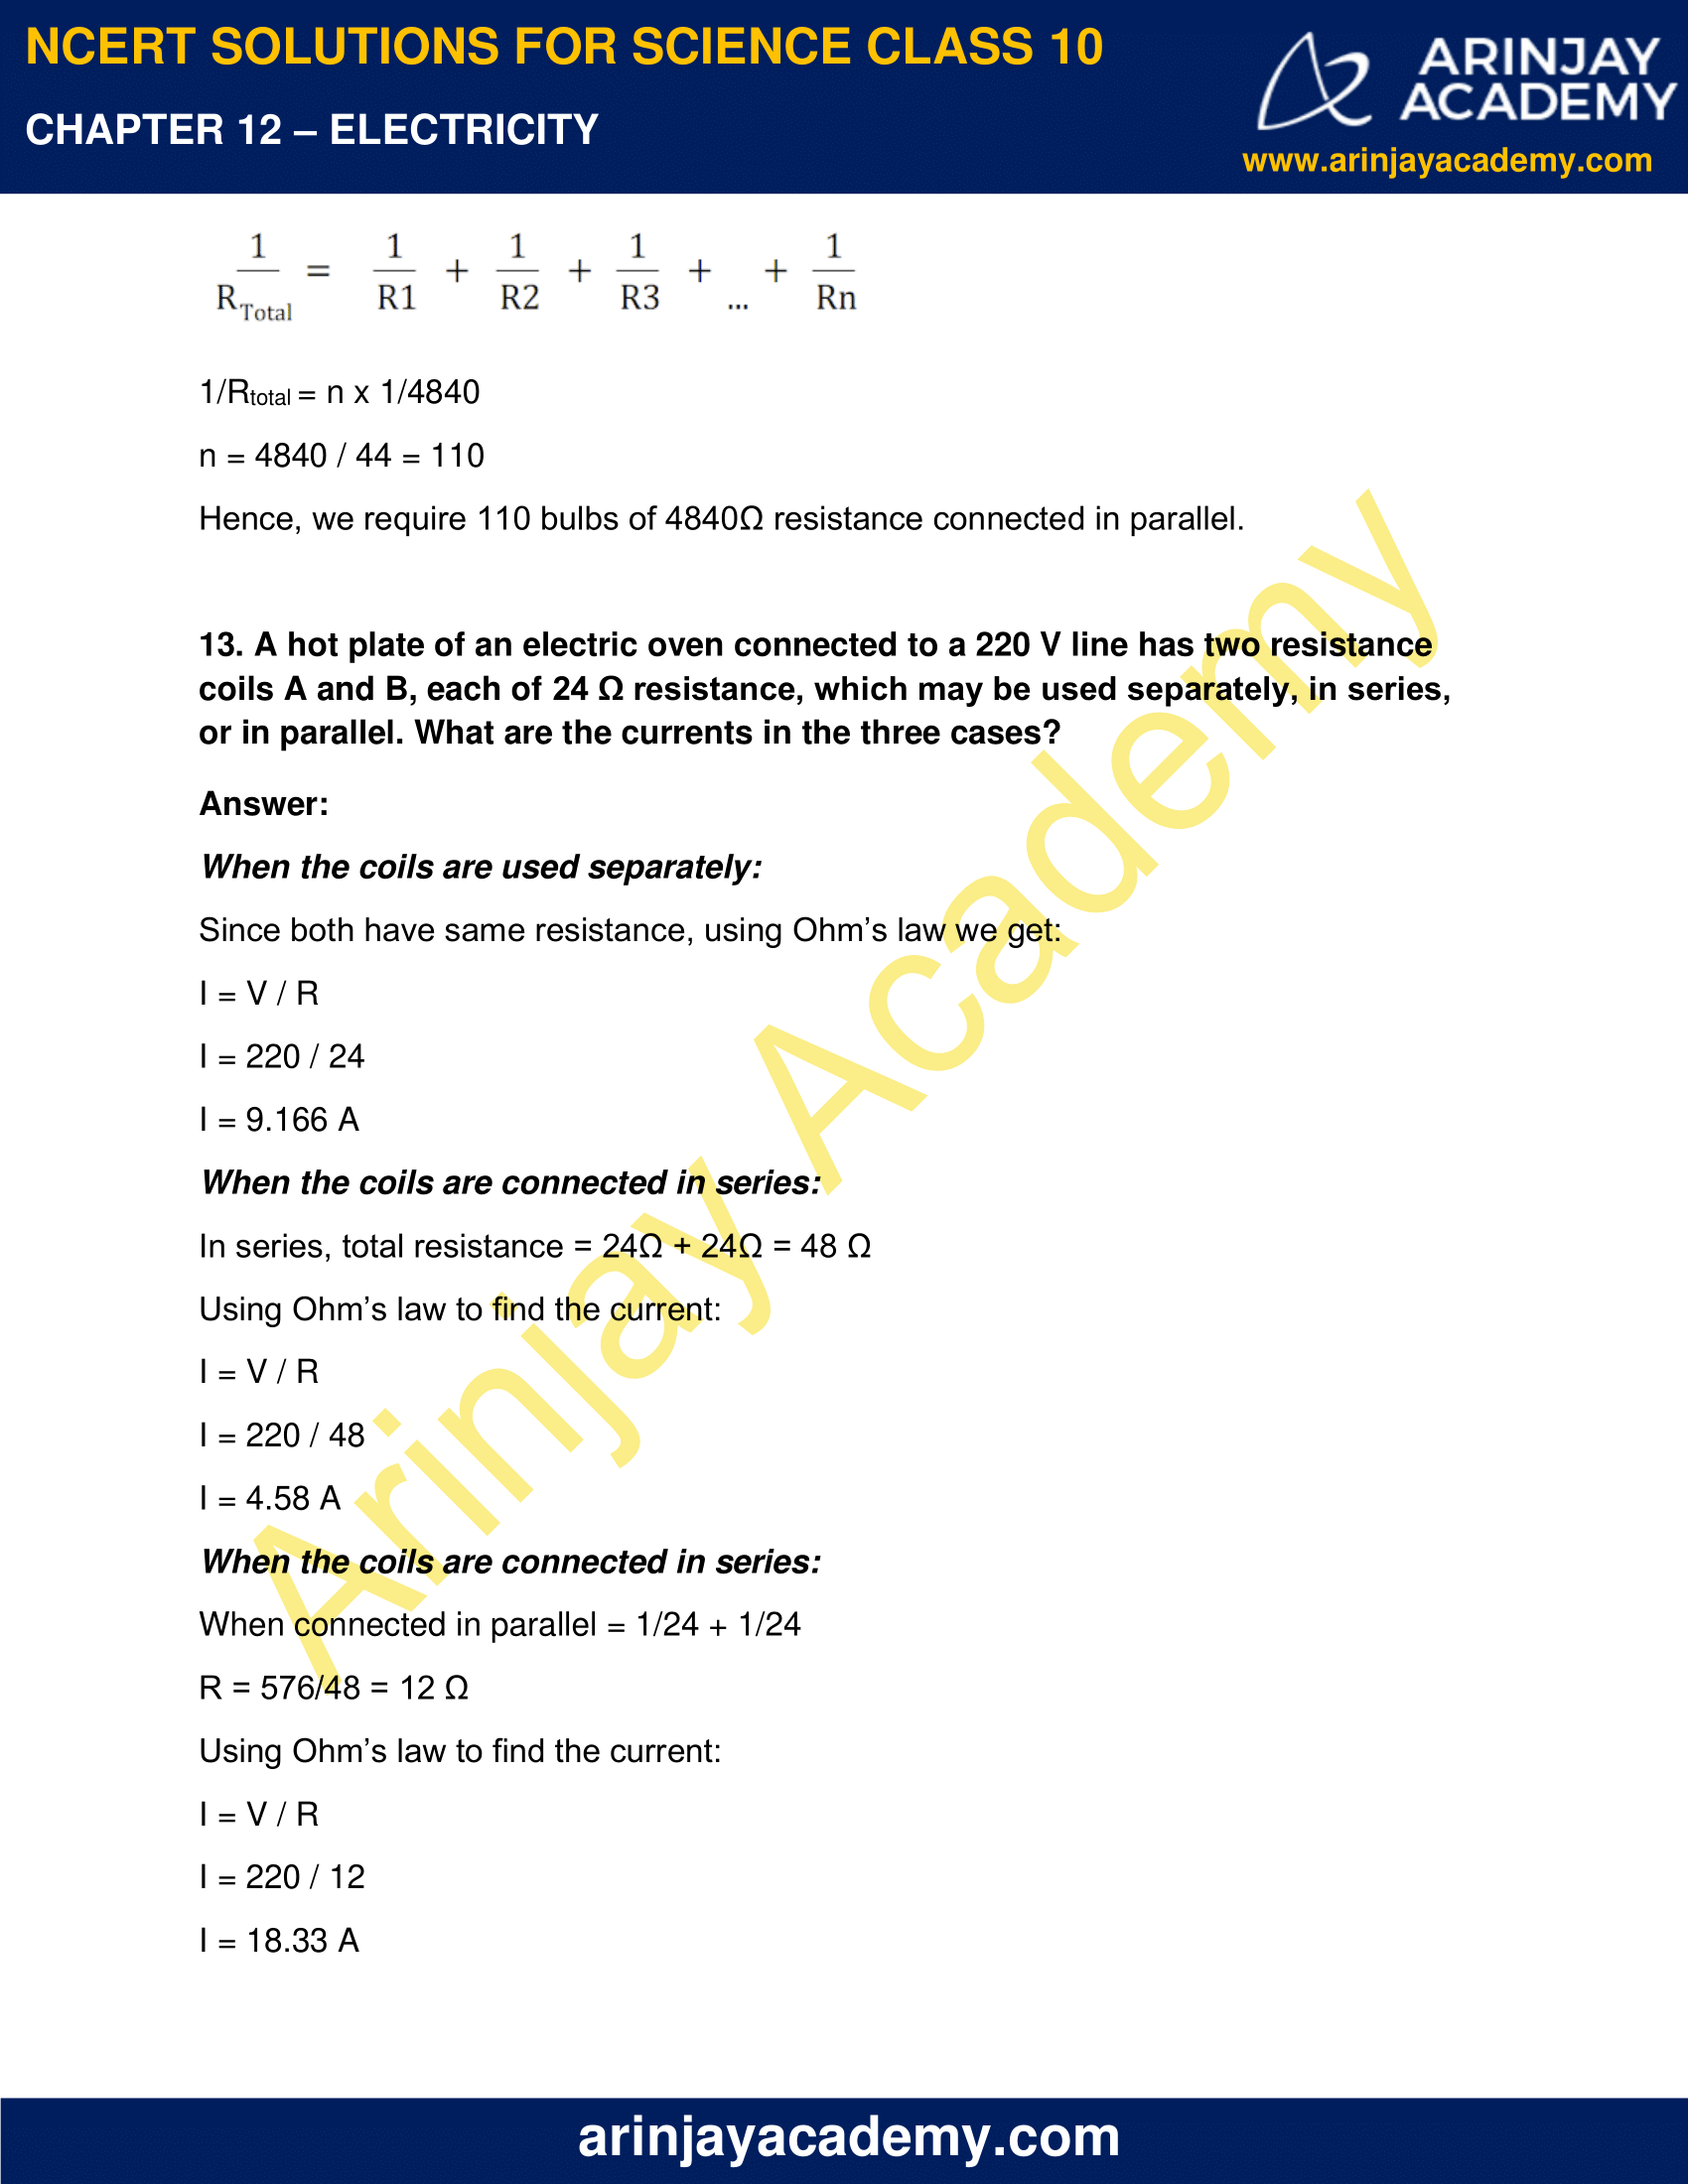 NCERT Solutions for Class 10 Science Chapter 12 Electricity image 19